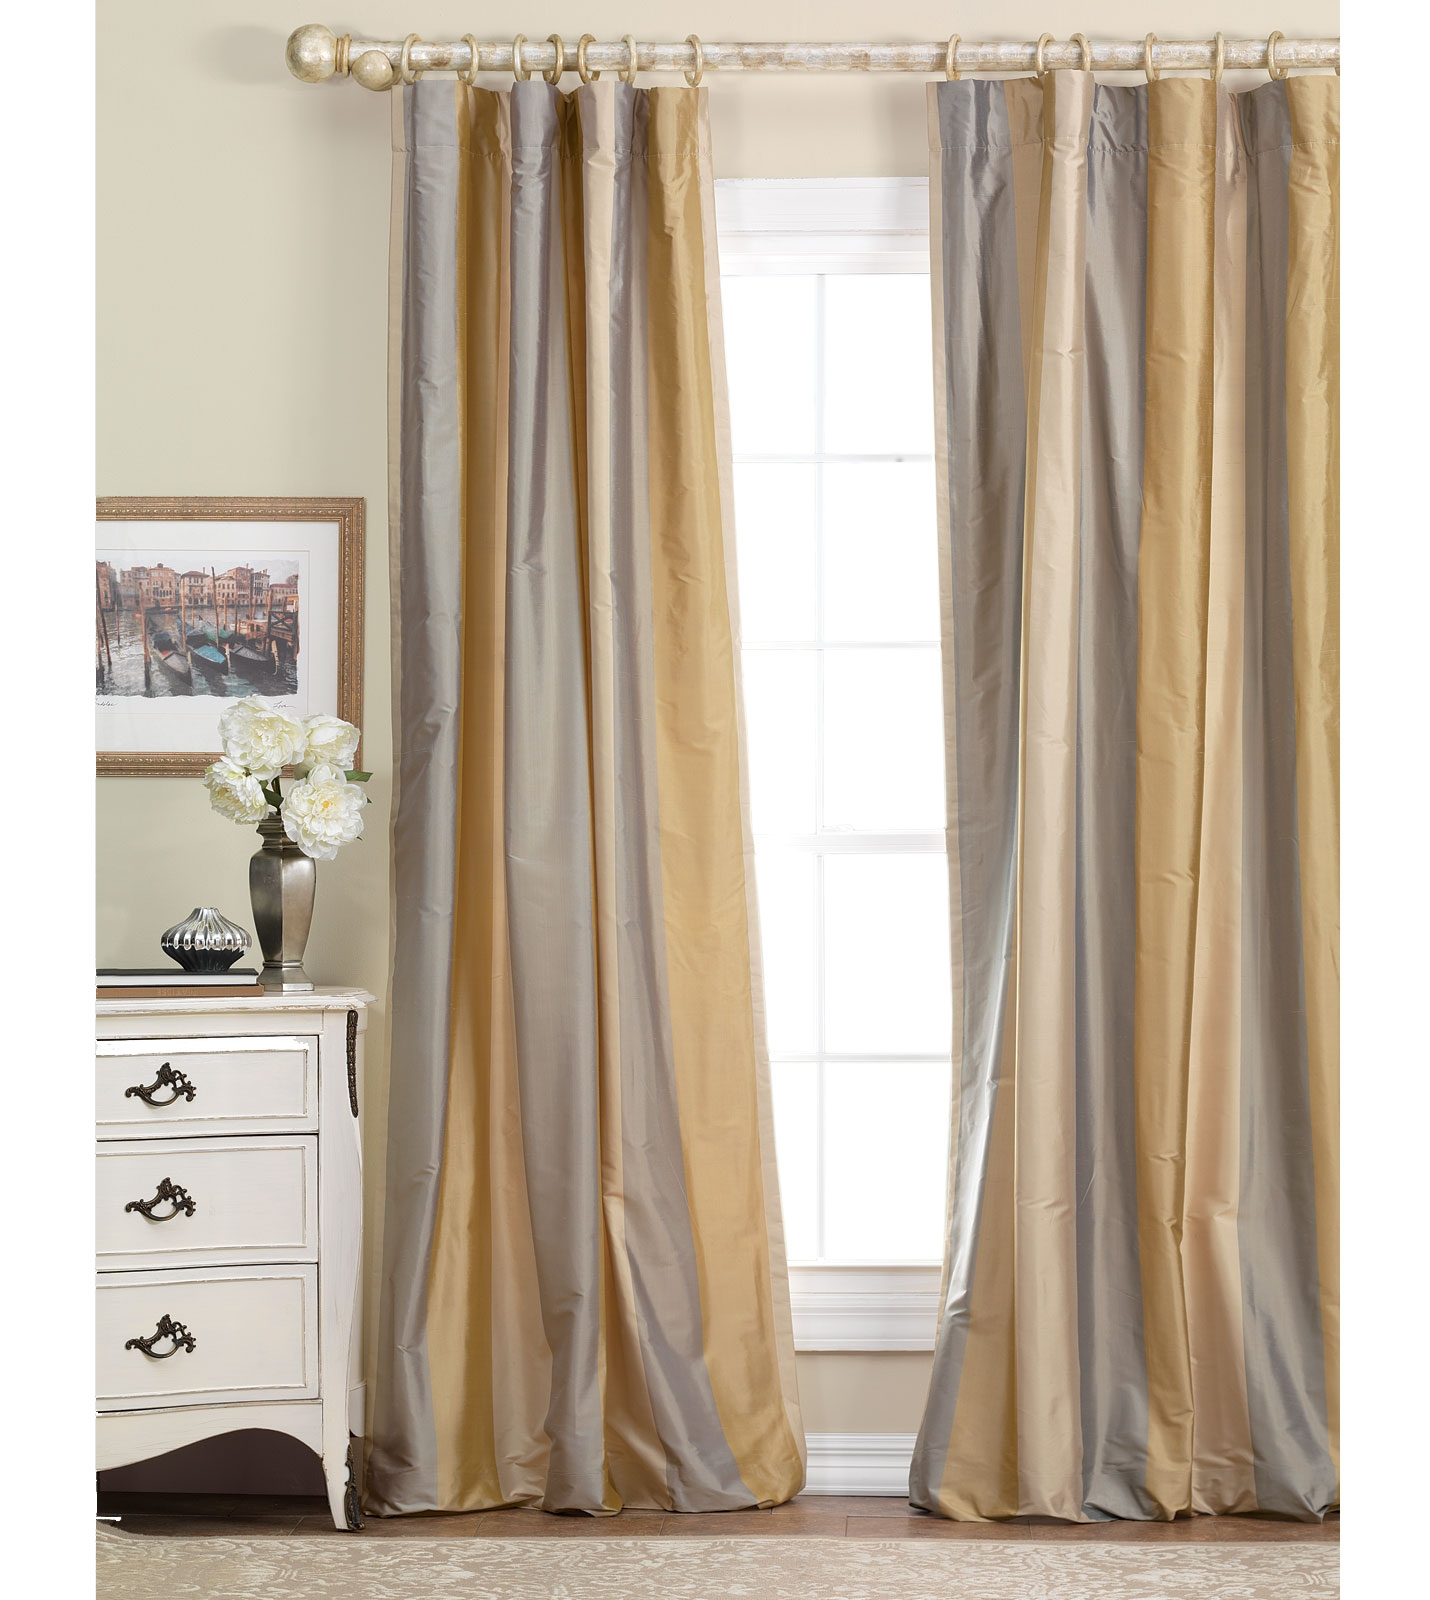 Beautiful Blue And Brown Curtains Curtain Pinterest Discover Throughout Green And Cream Striped Curtains (Image 2 of 15)